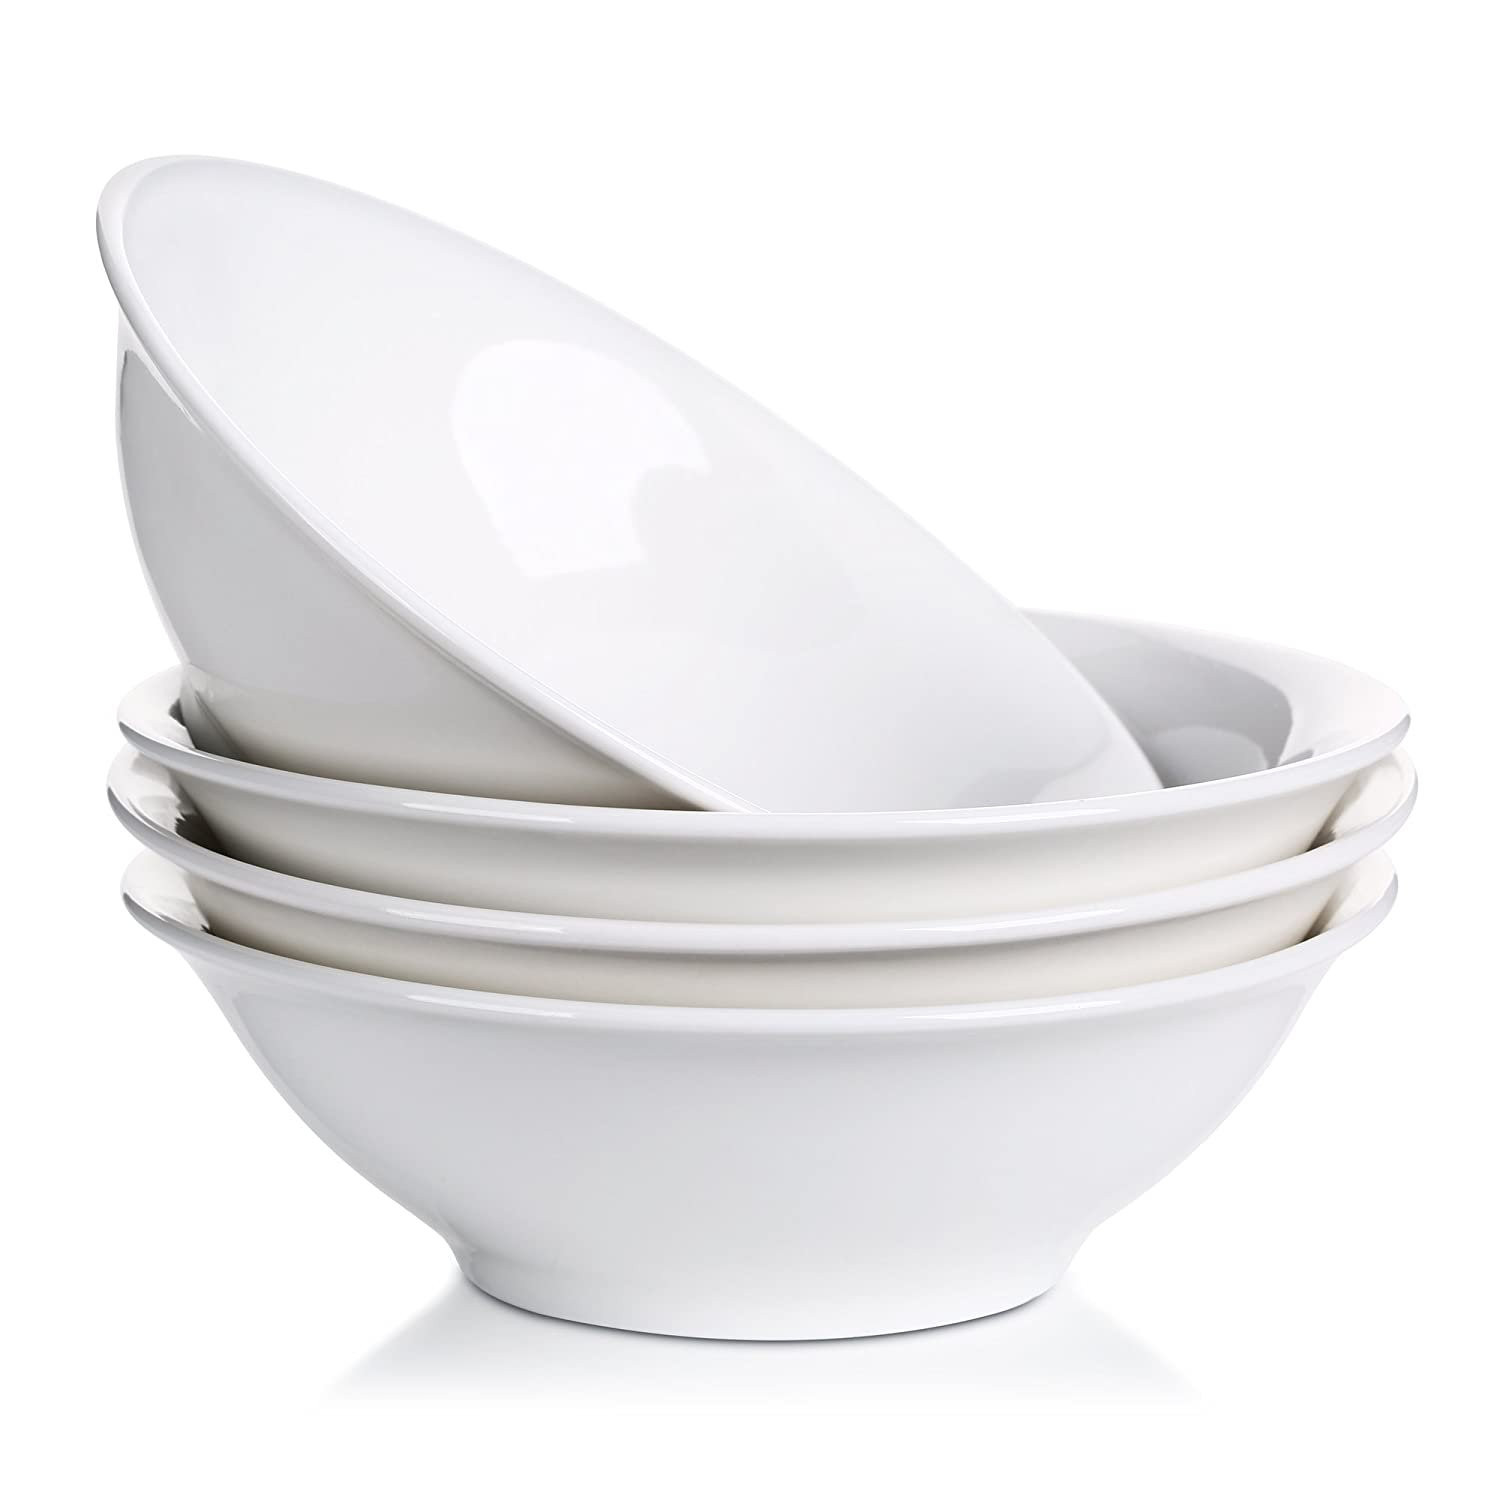 Lifver 18-Oz Porcelain Cereal Bowls/Soup/Noodle Bowl Set,Natural White,Set of 4 SYNCHKG078794